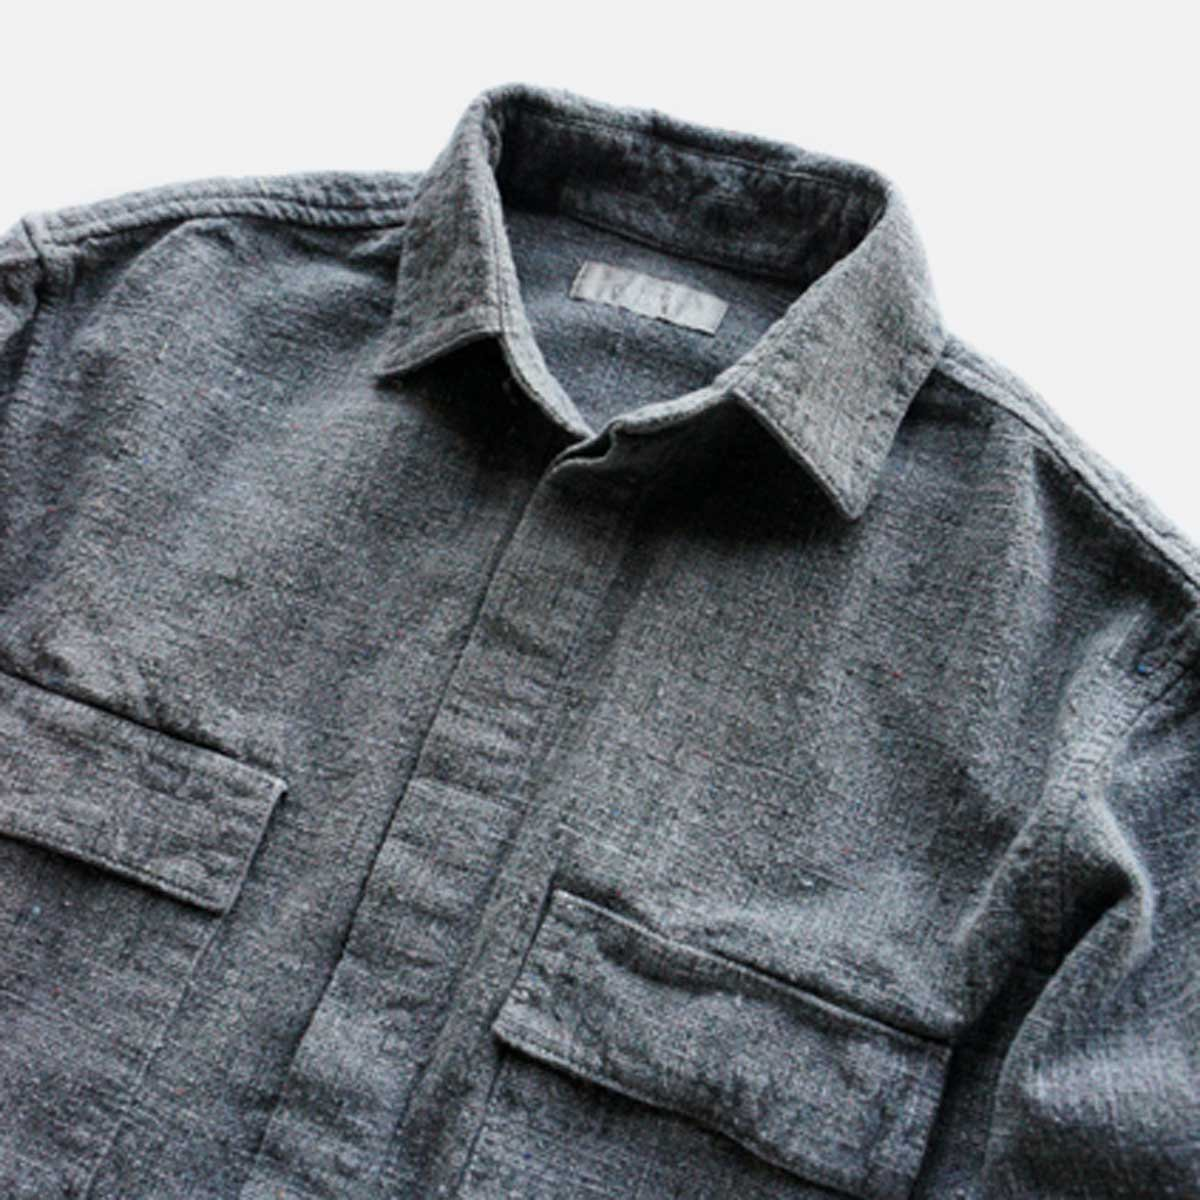 COLINA French Work Shirts  Handspun Cotton Tweed (Usuzumi)3